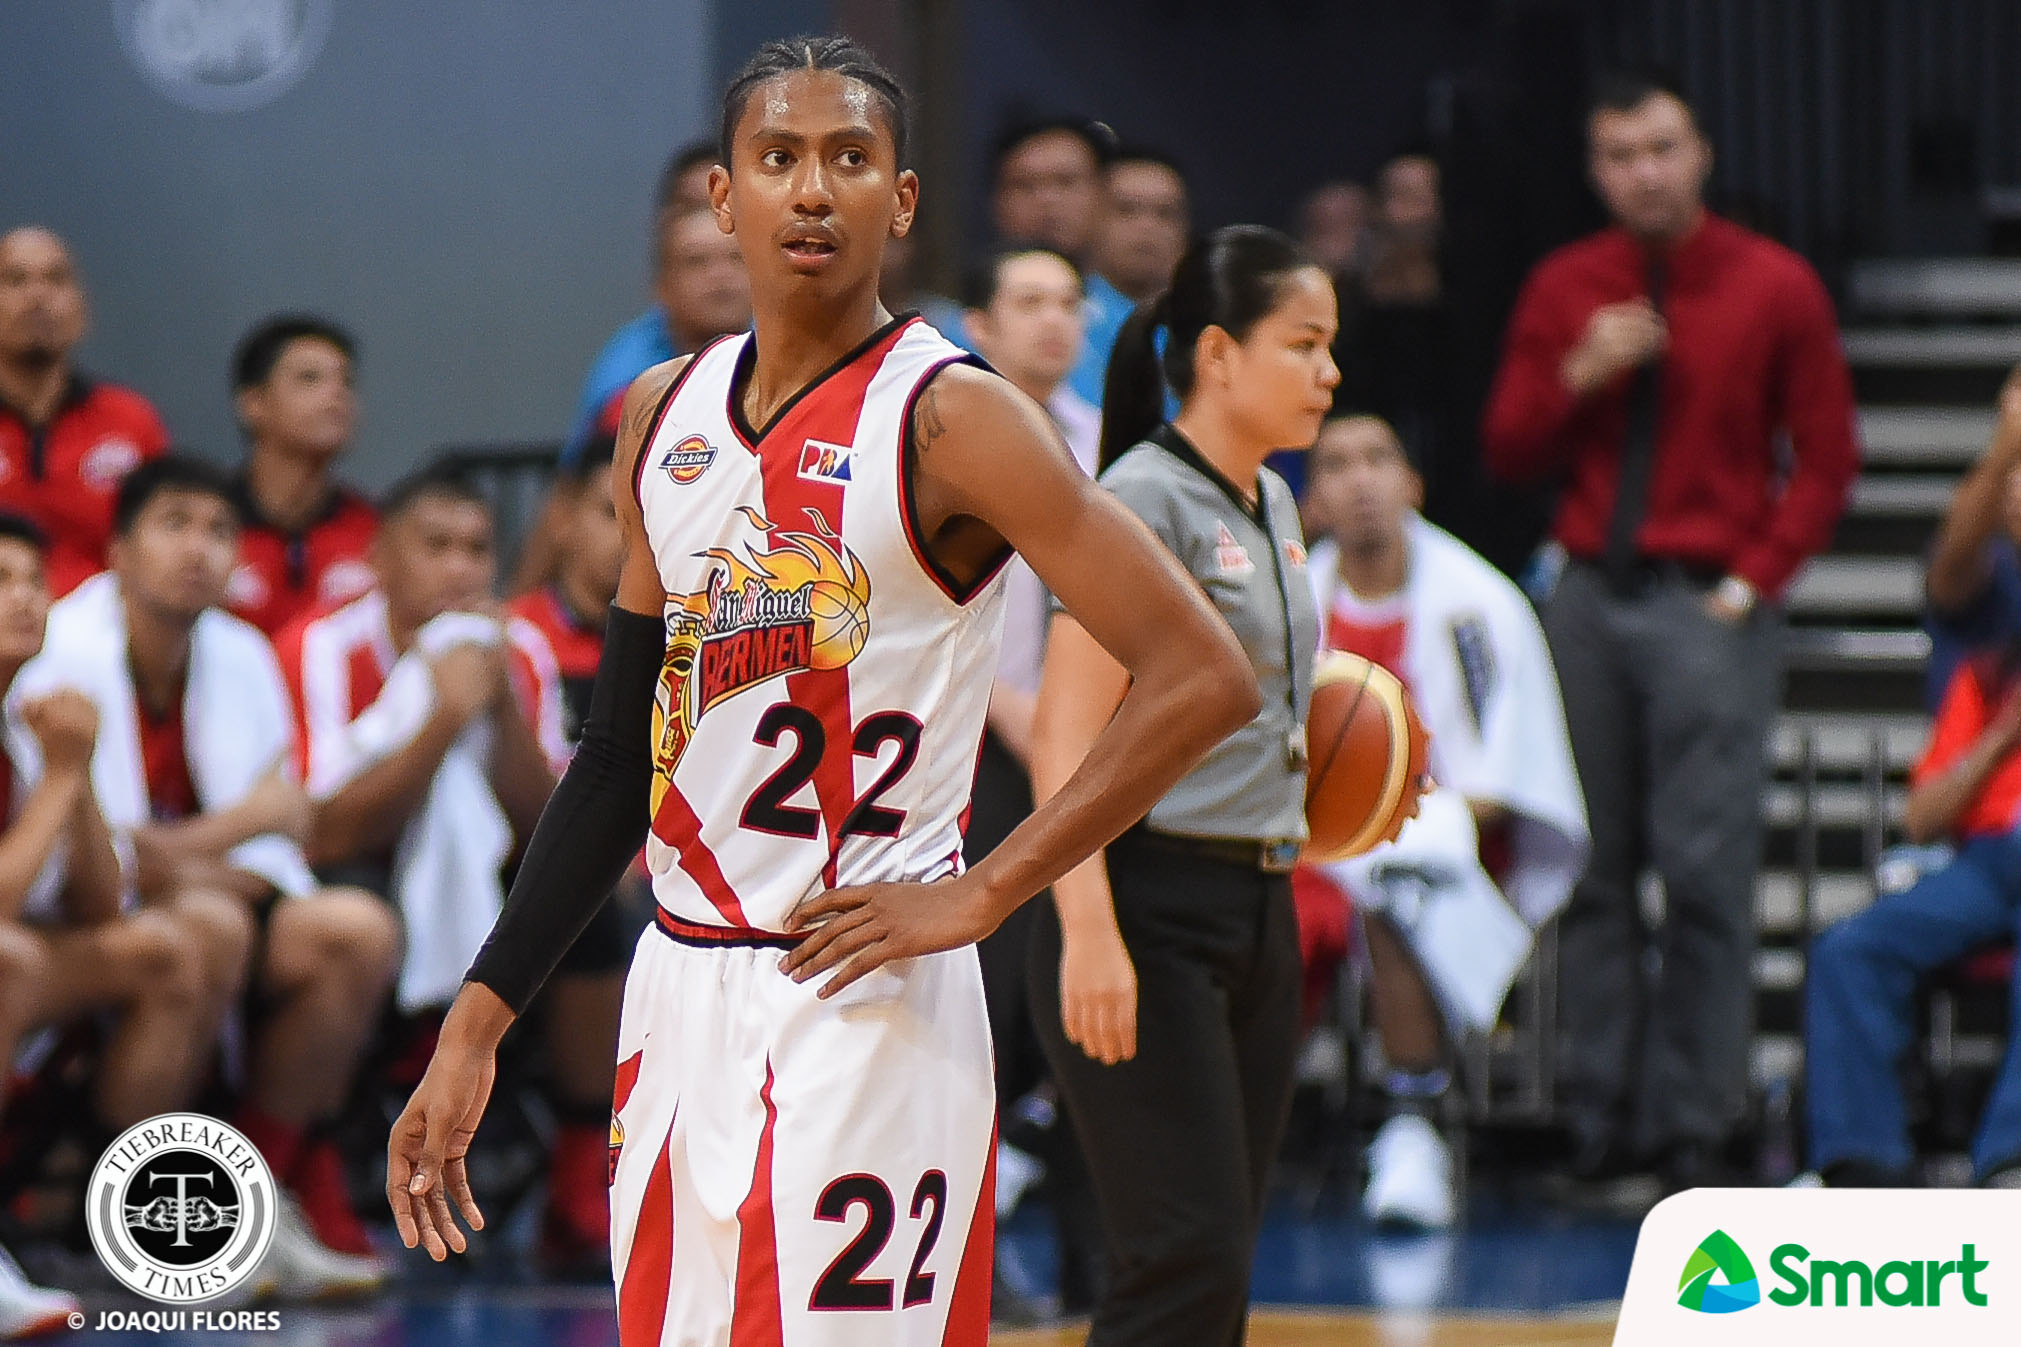 PBA-2018-Semis-San-Miguel-vs.-Ginebra-Ganuelas-Rosser-4991 Russel Escoto was mourning 'personal loss' when he was traded to Terrafirma Basketball News PBA  - philippine sports news